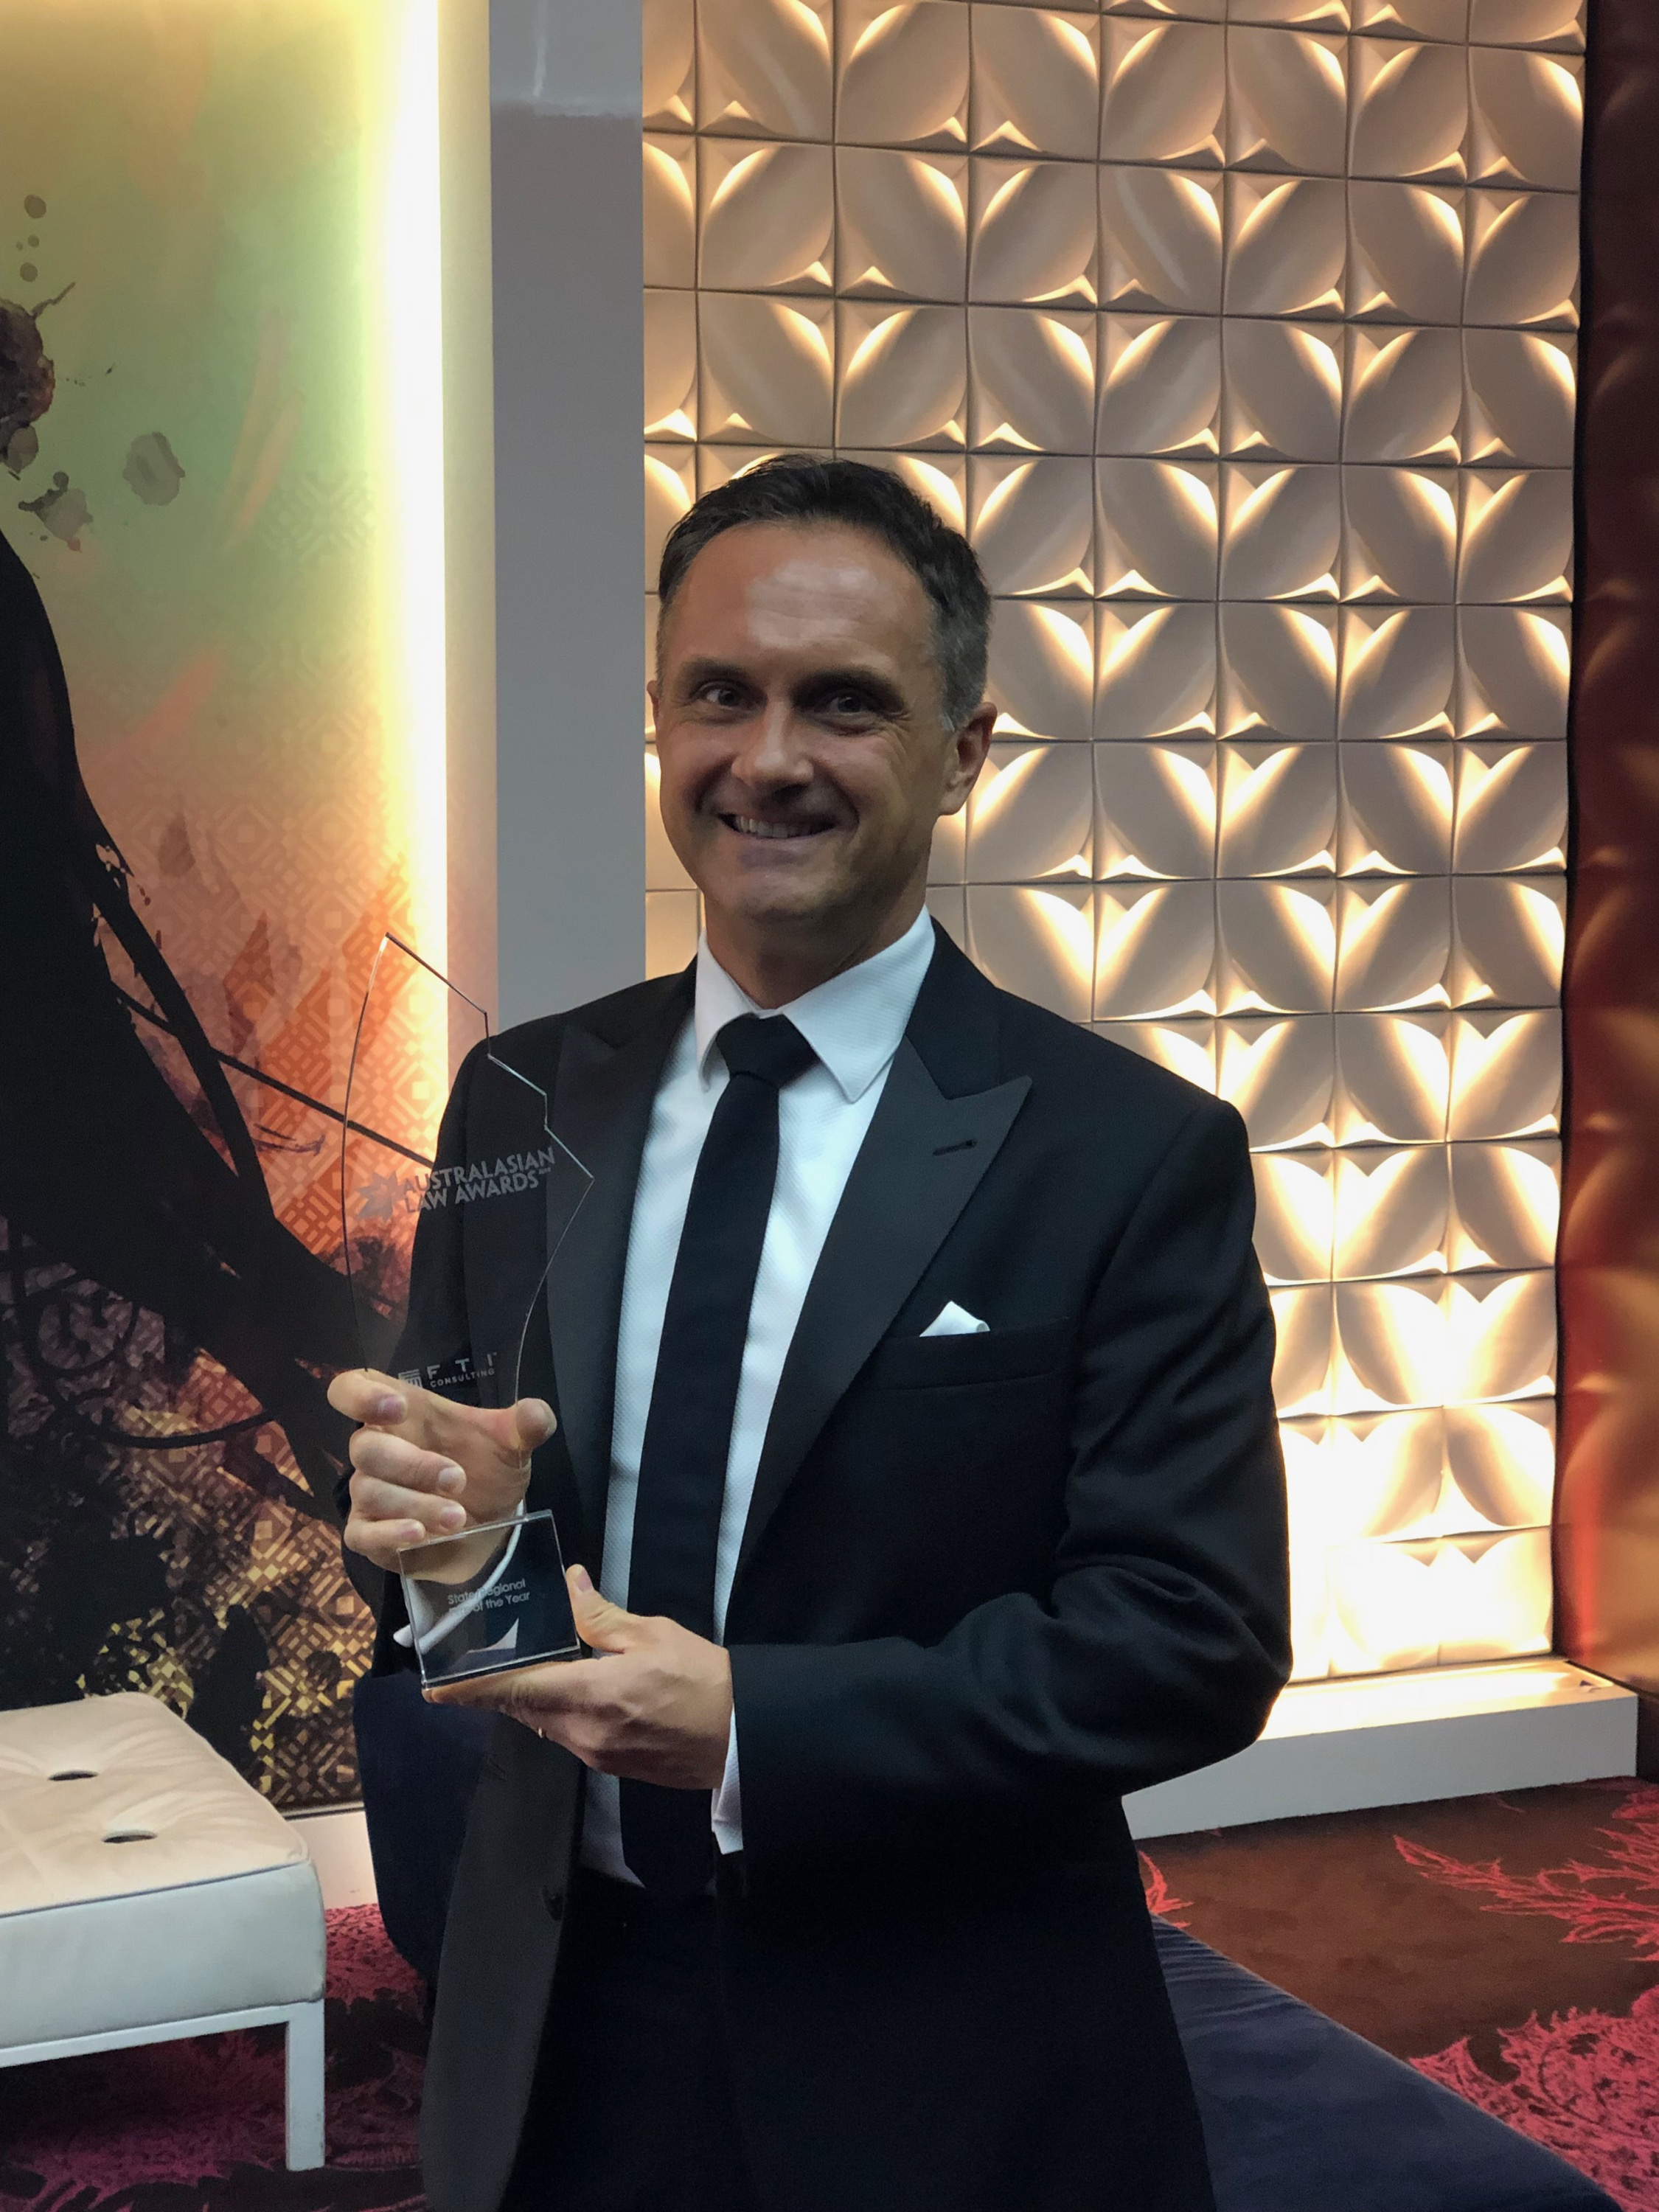 ' Principal Lou Stojanovski With Australasian Law Award For 2019 State Regional Law Firm Of The Year Pic 3 (002)